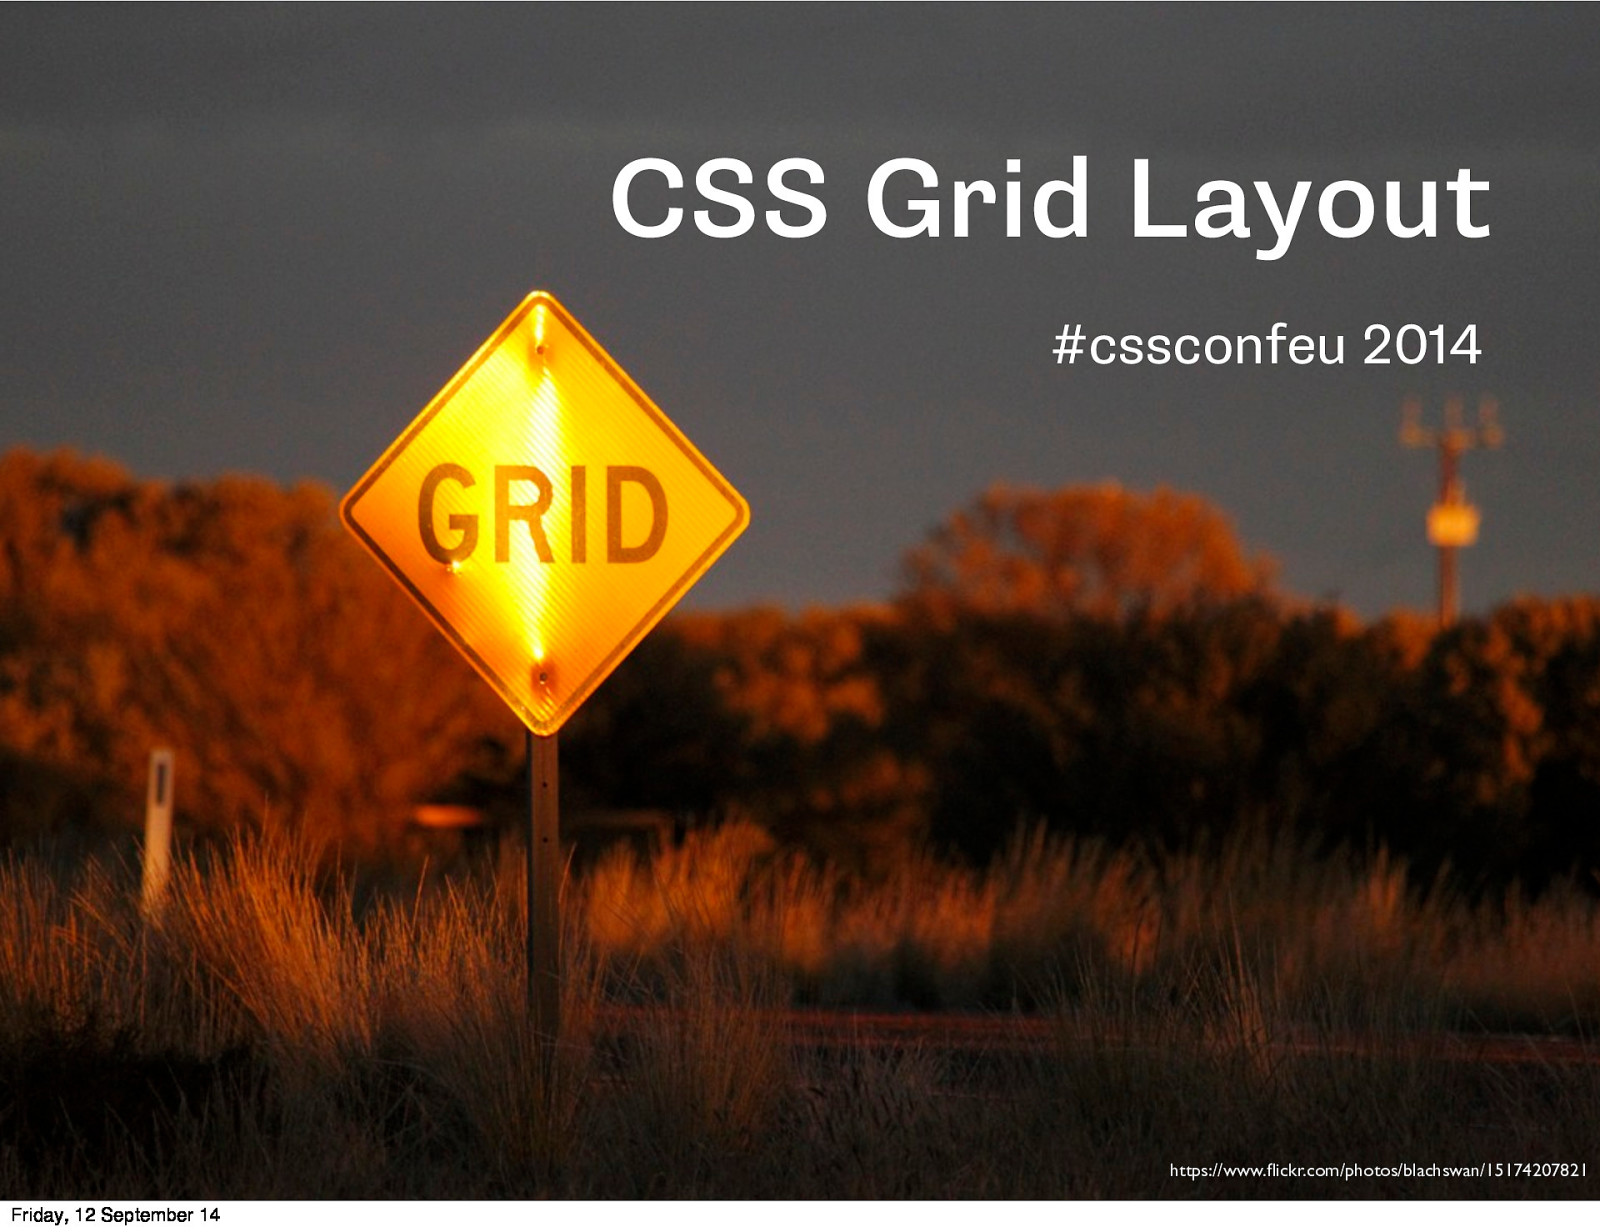 CSS Conf: CSS Grid Layout